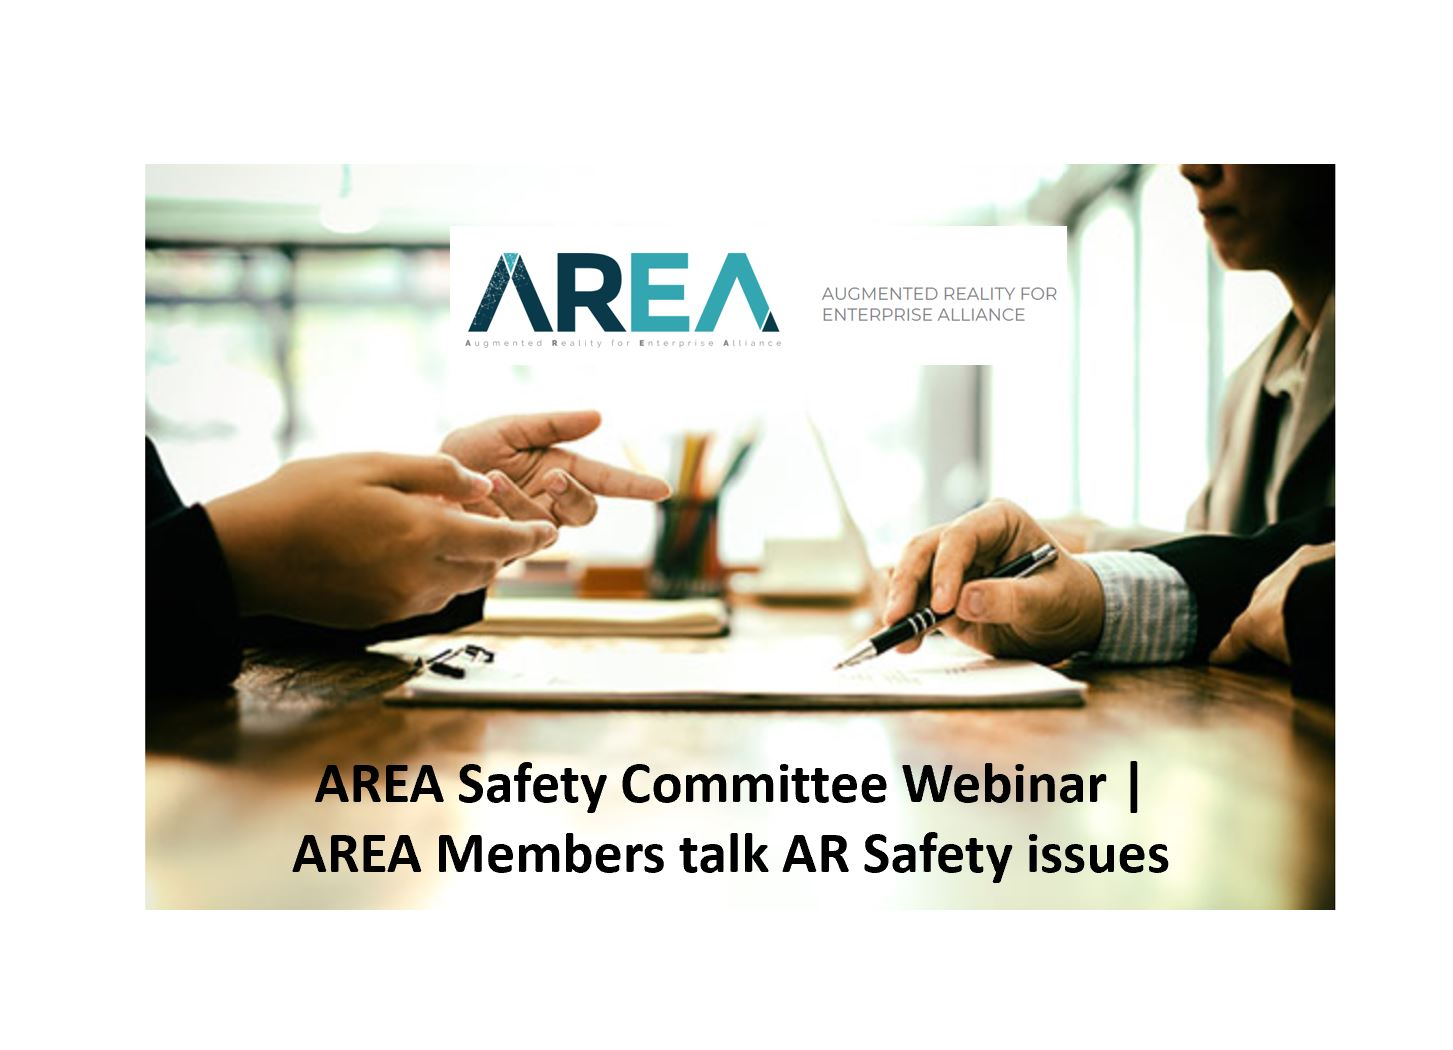 AREA Safety Committee Webinar | AREA Members talk AR Safety issues